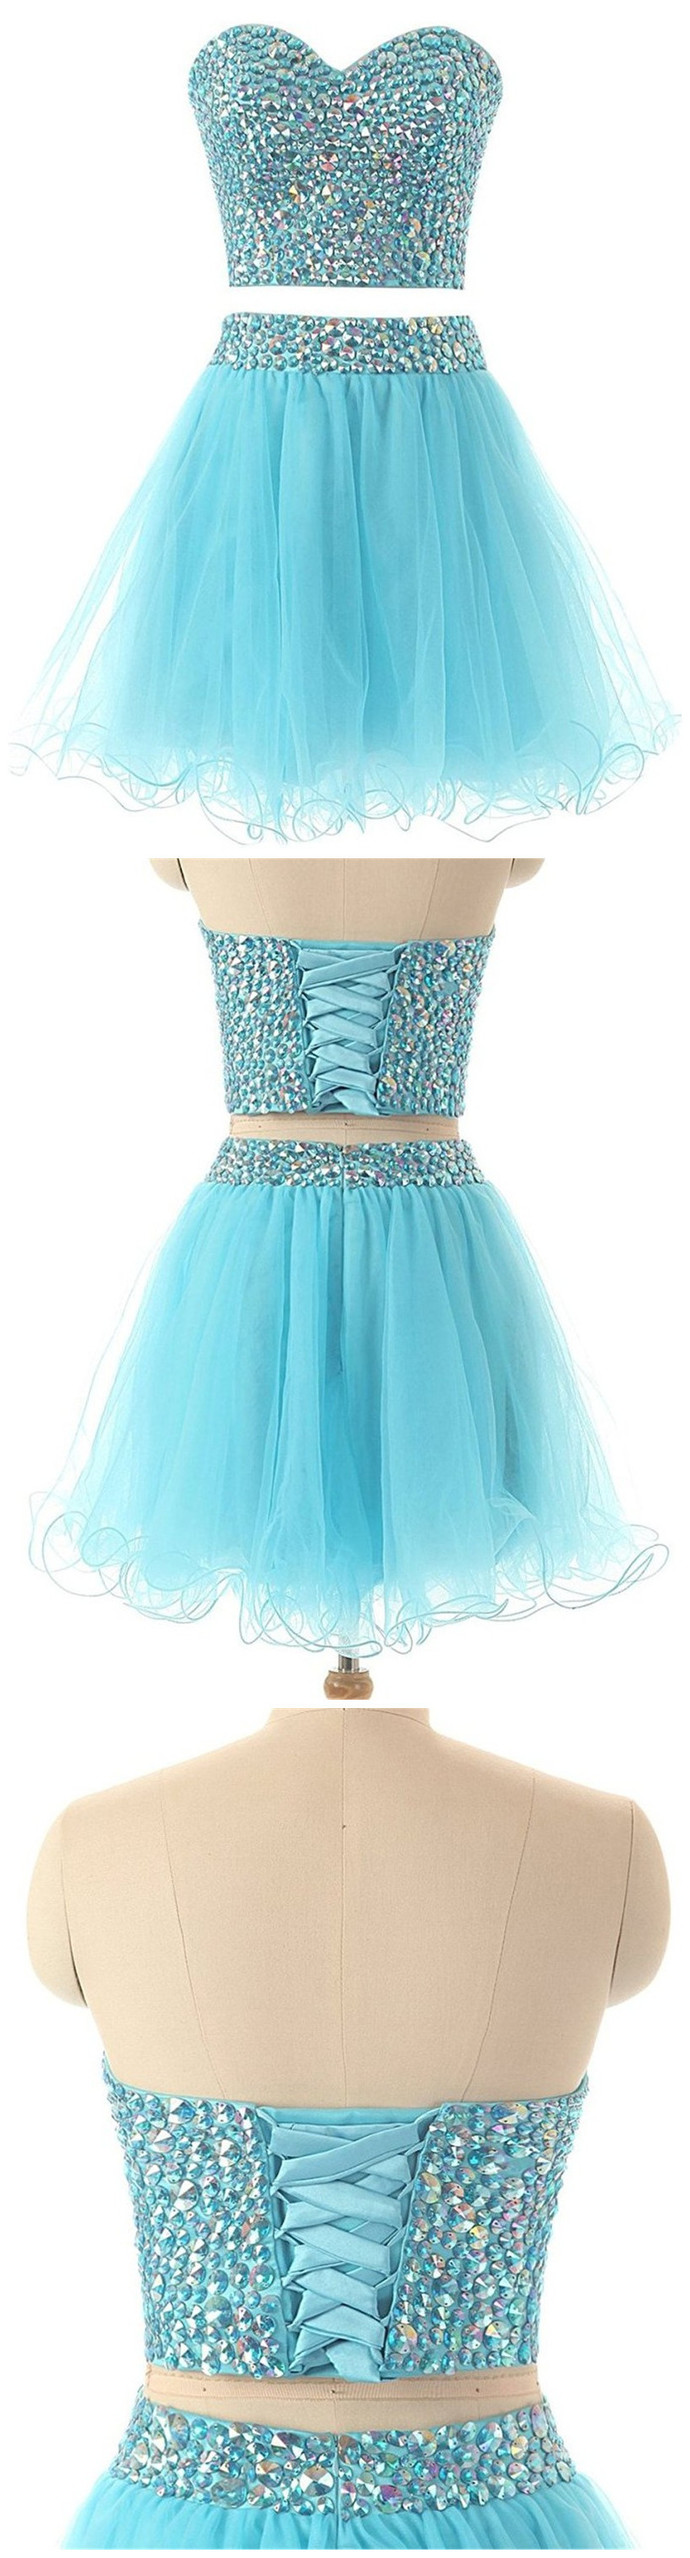 Sweetheart Tulle Sky Blue Two Piece Prom Dress, Crystal Short Homecoming Dress